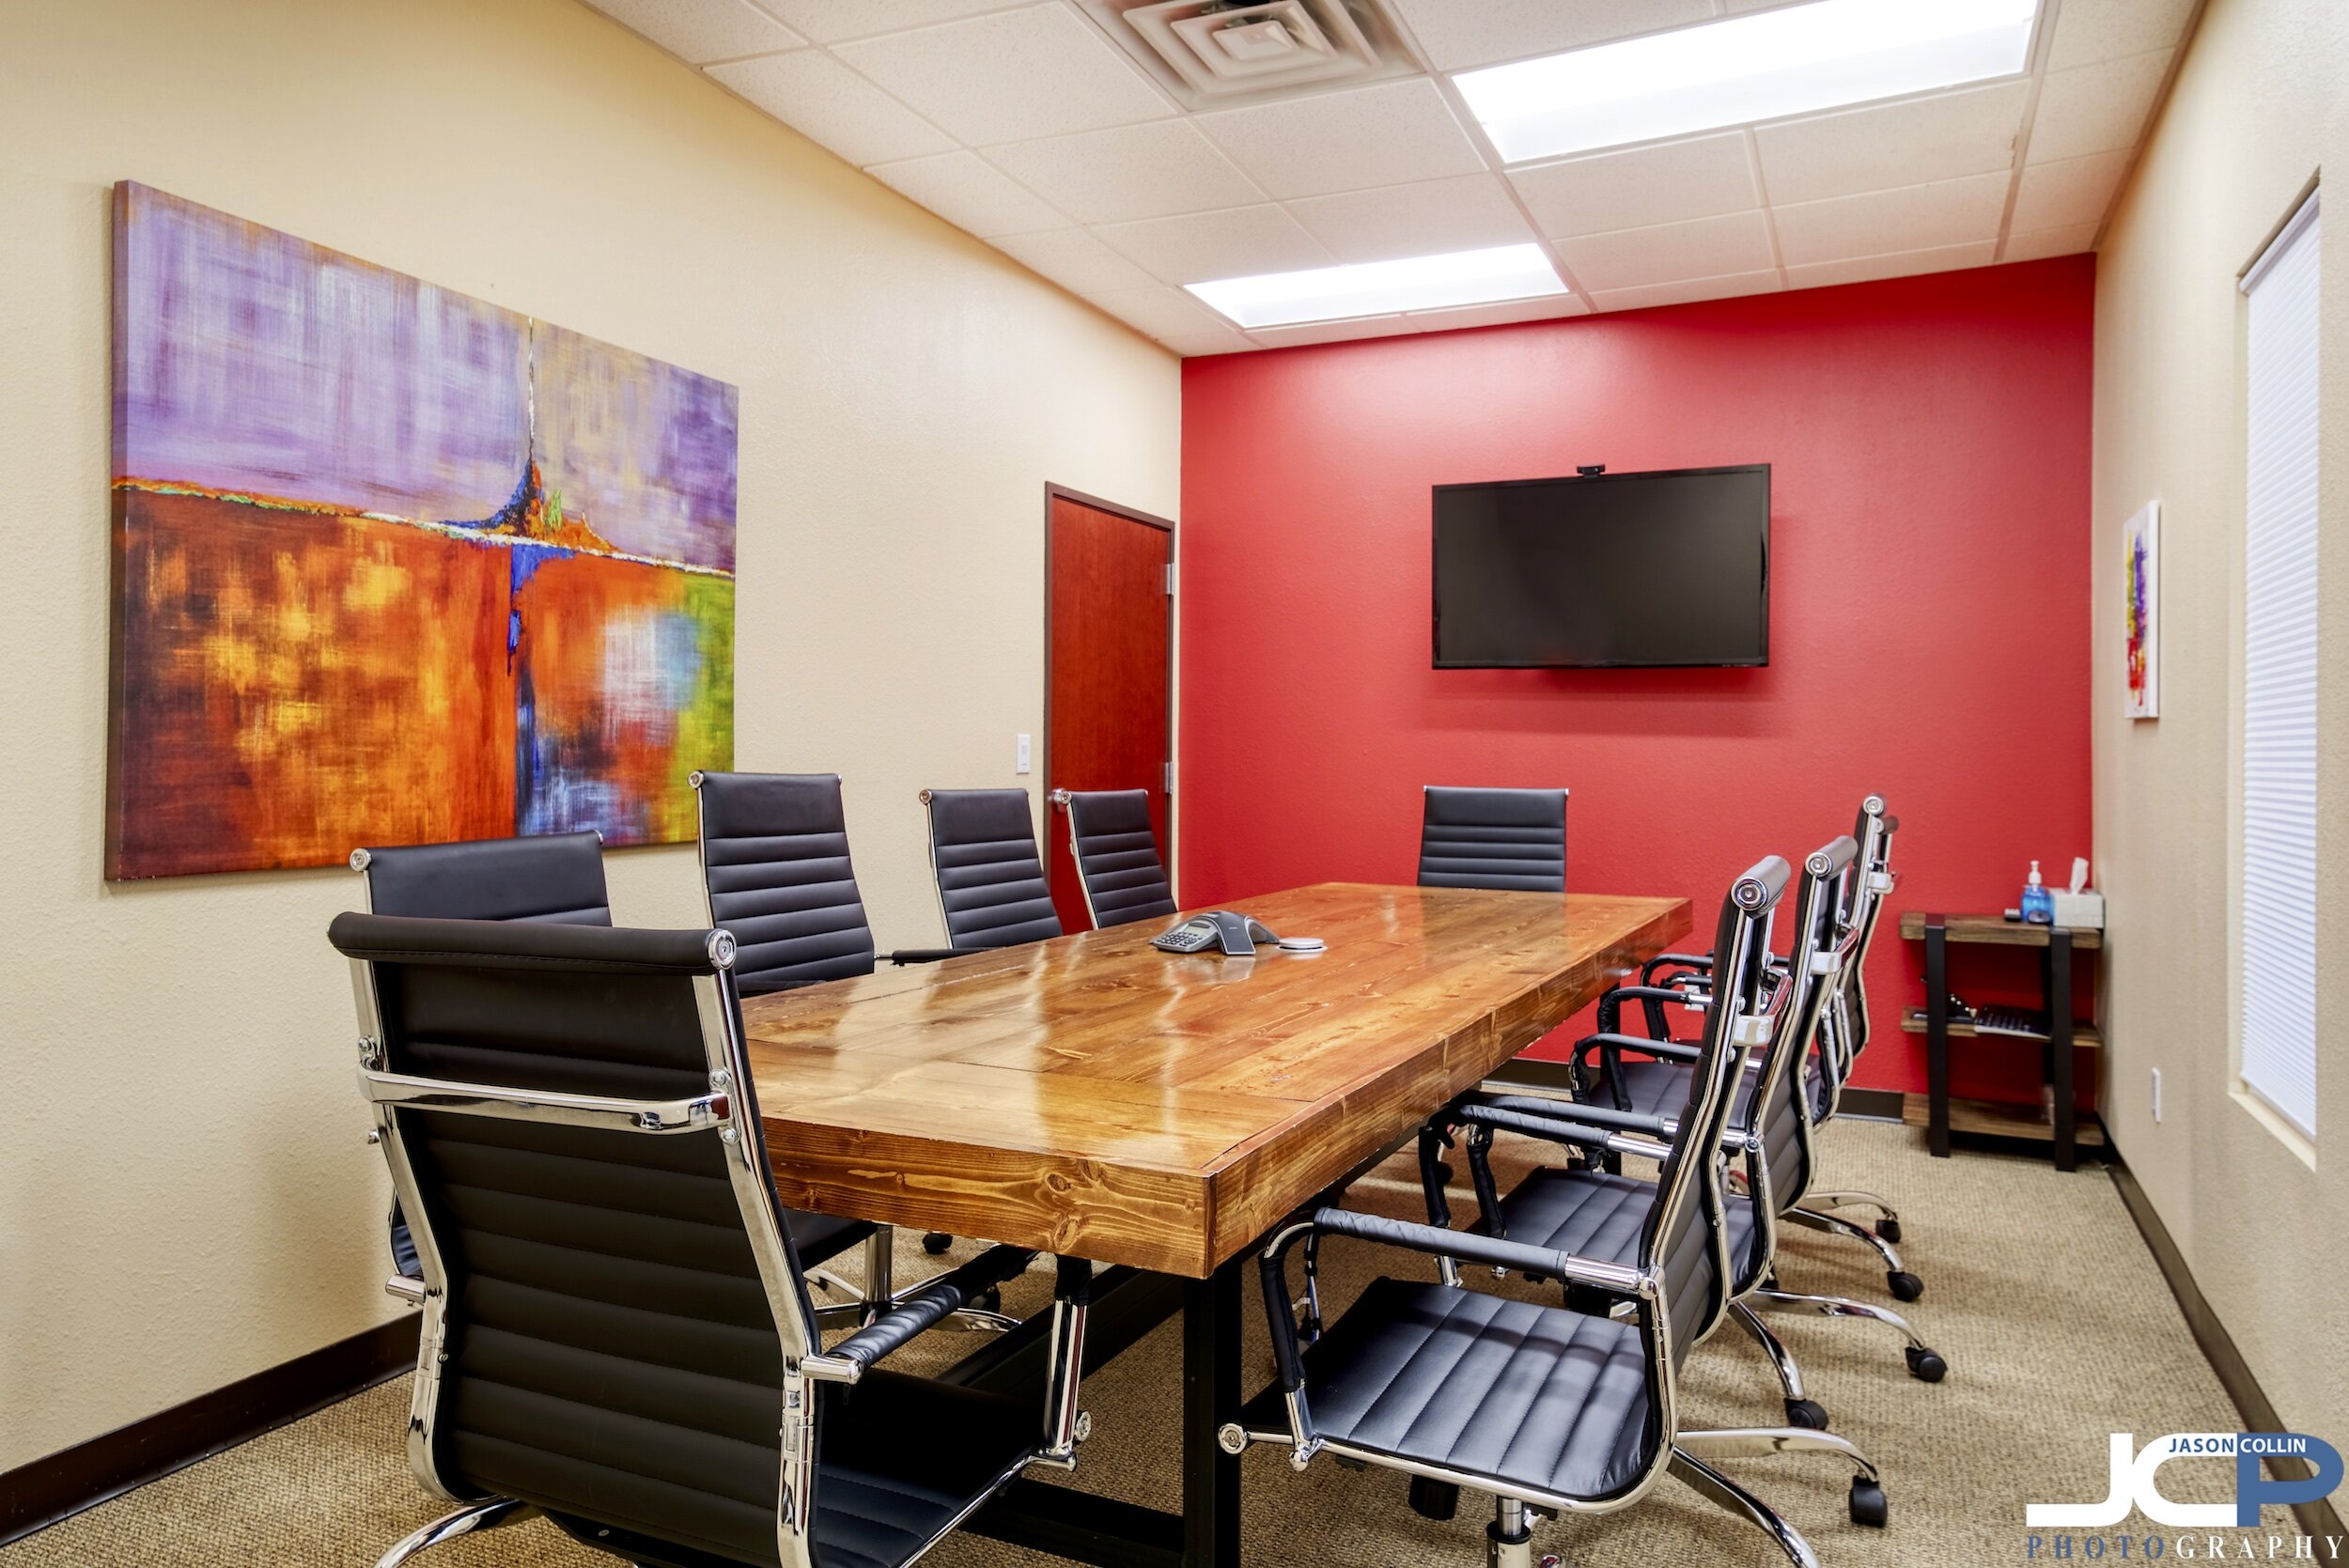 Show your clients what they can expect when they visit your law firm with professional photography